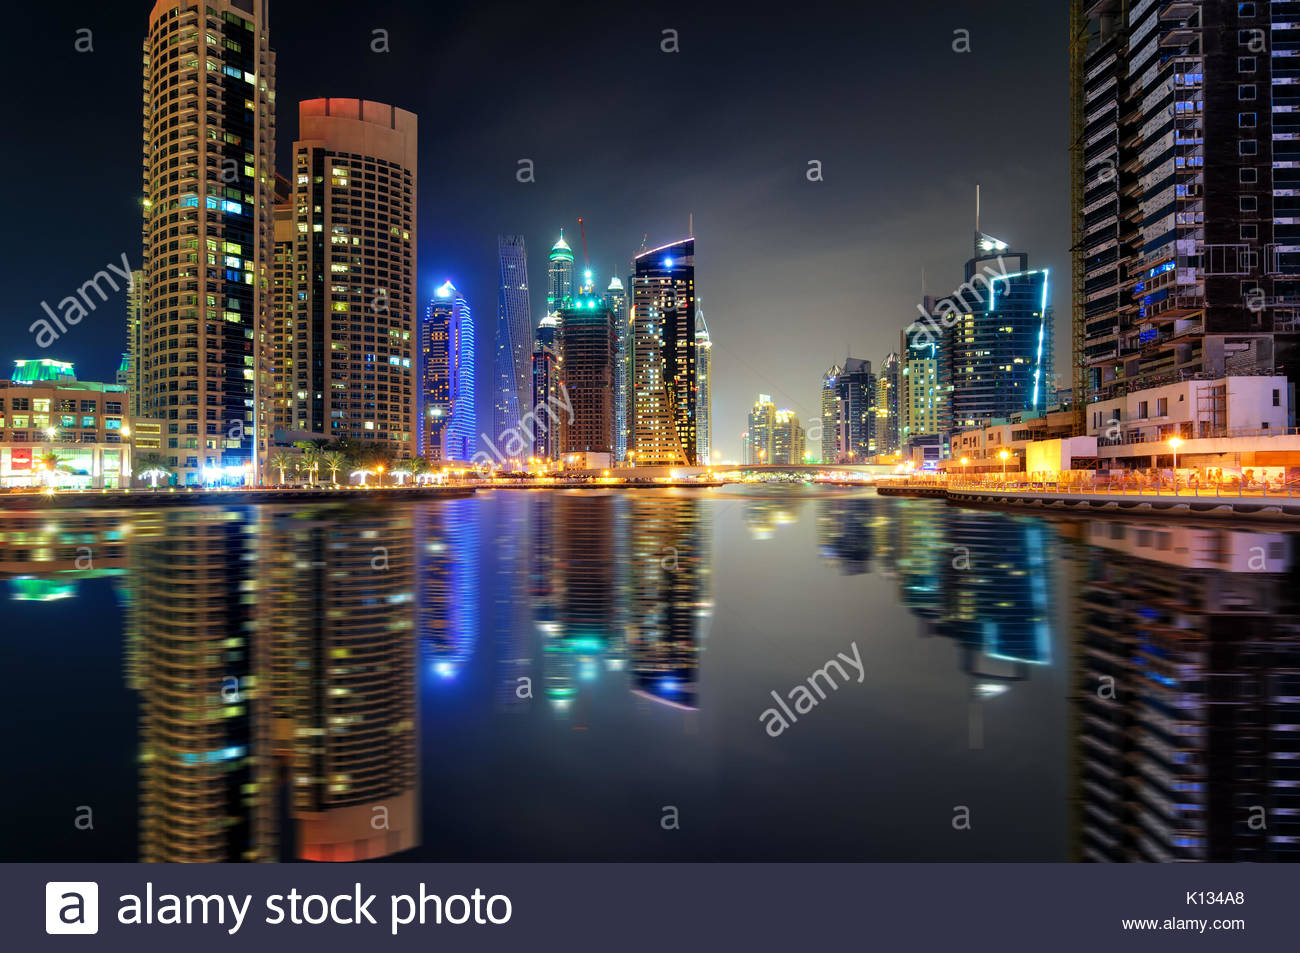 Amazing night dubai marina skyline with tallest skyscrapers and beautiful water reflection, Dubai, United Arab Emirates - Stock Image